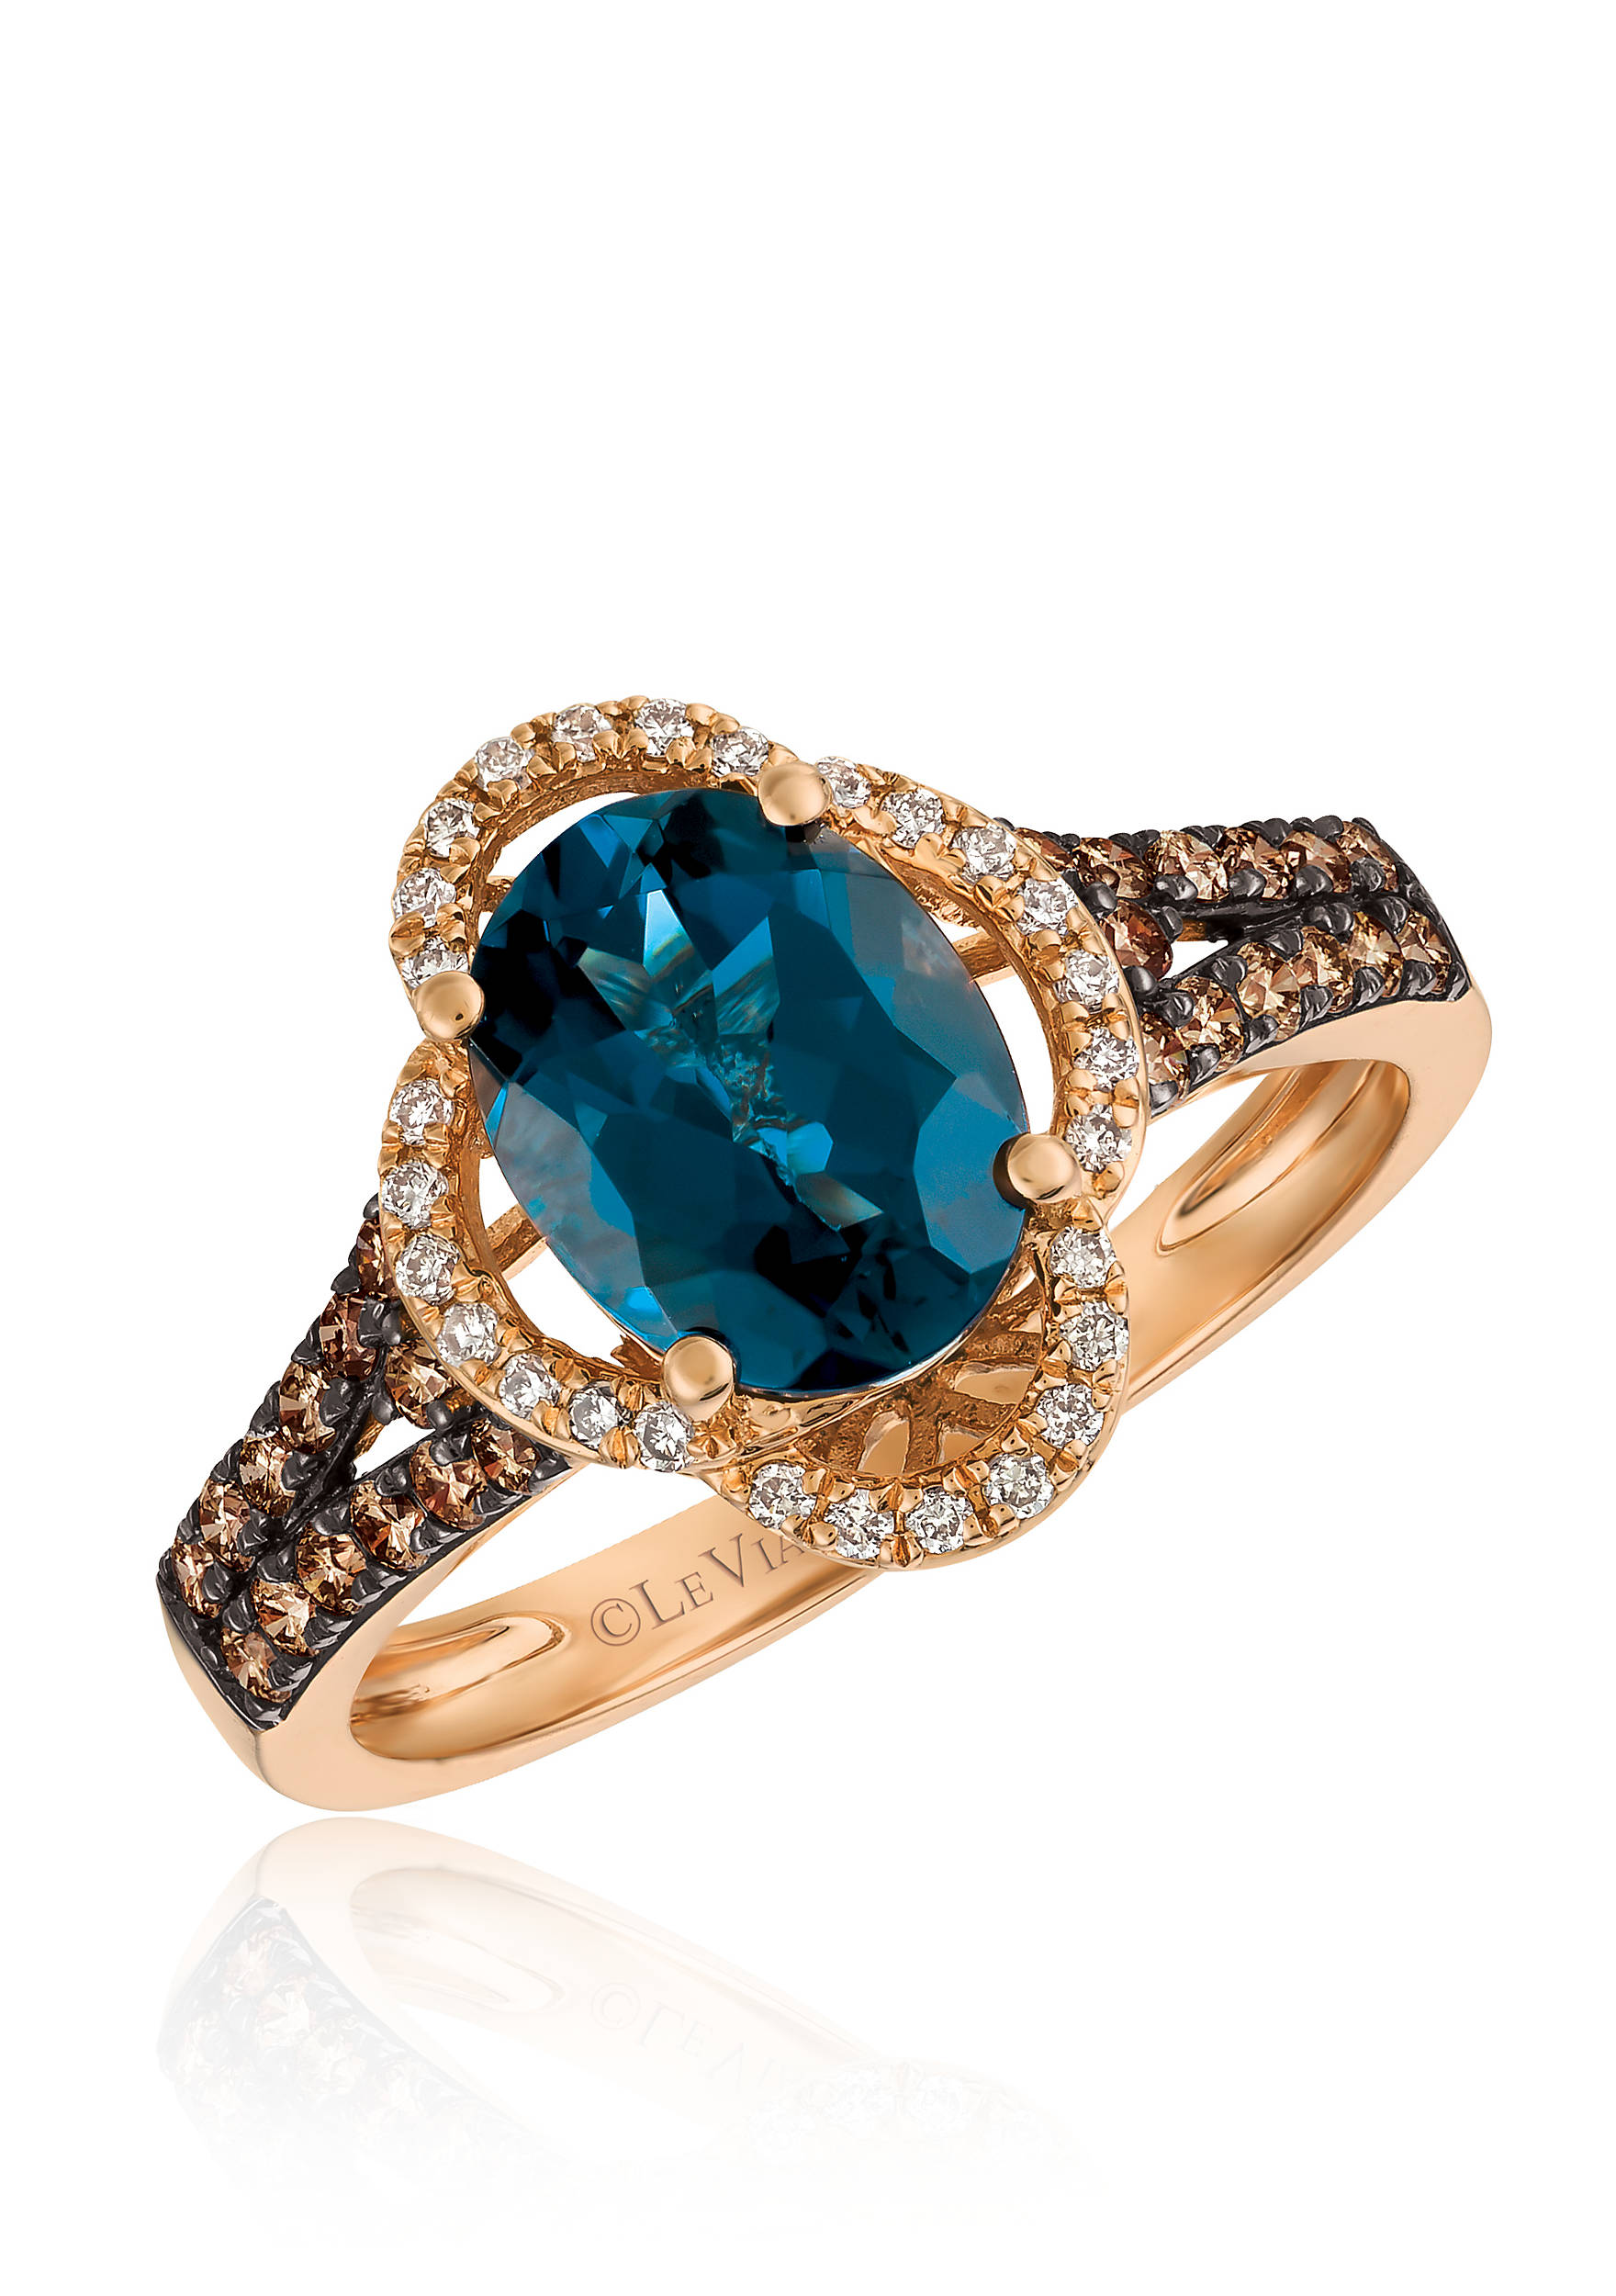 Deep Sea Blue Topaz With Vanilla Diamonds And Chocolate Ring In 14k